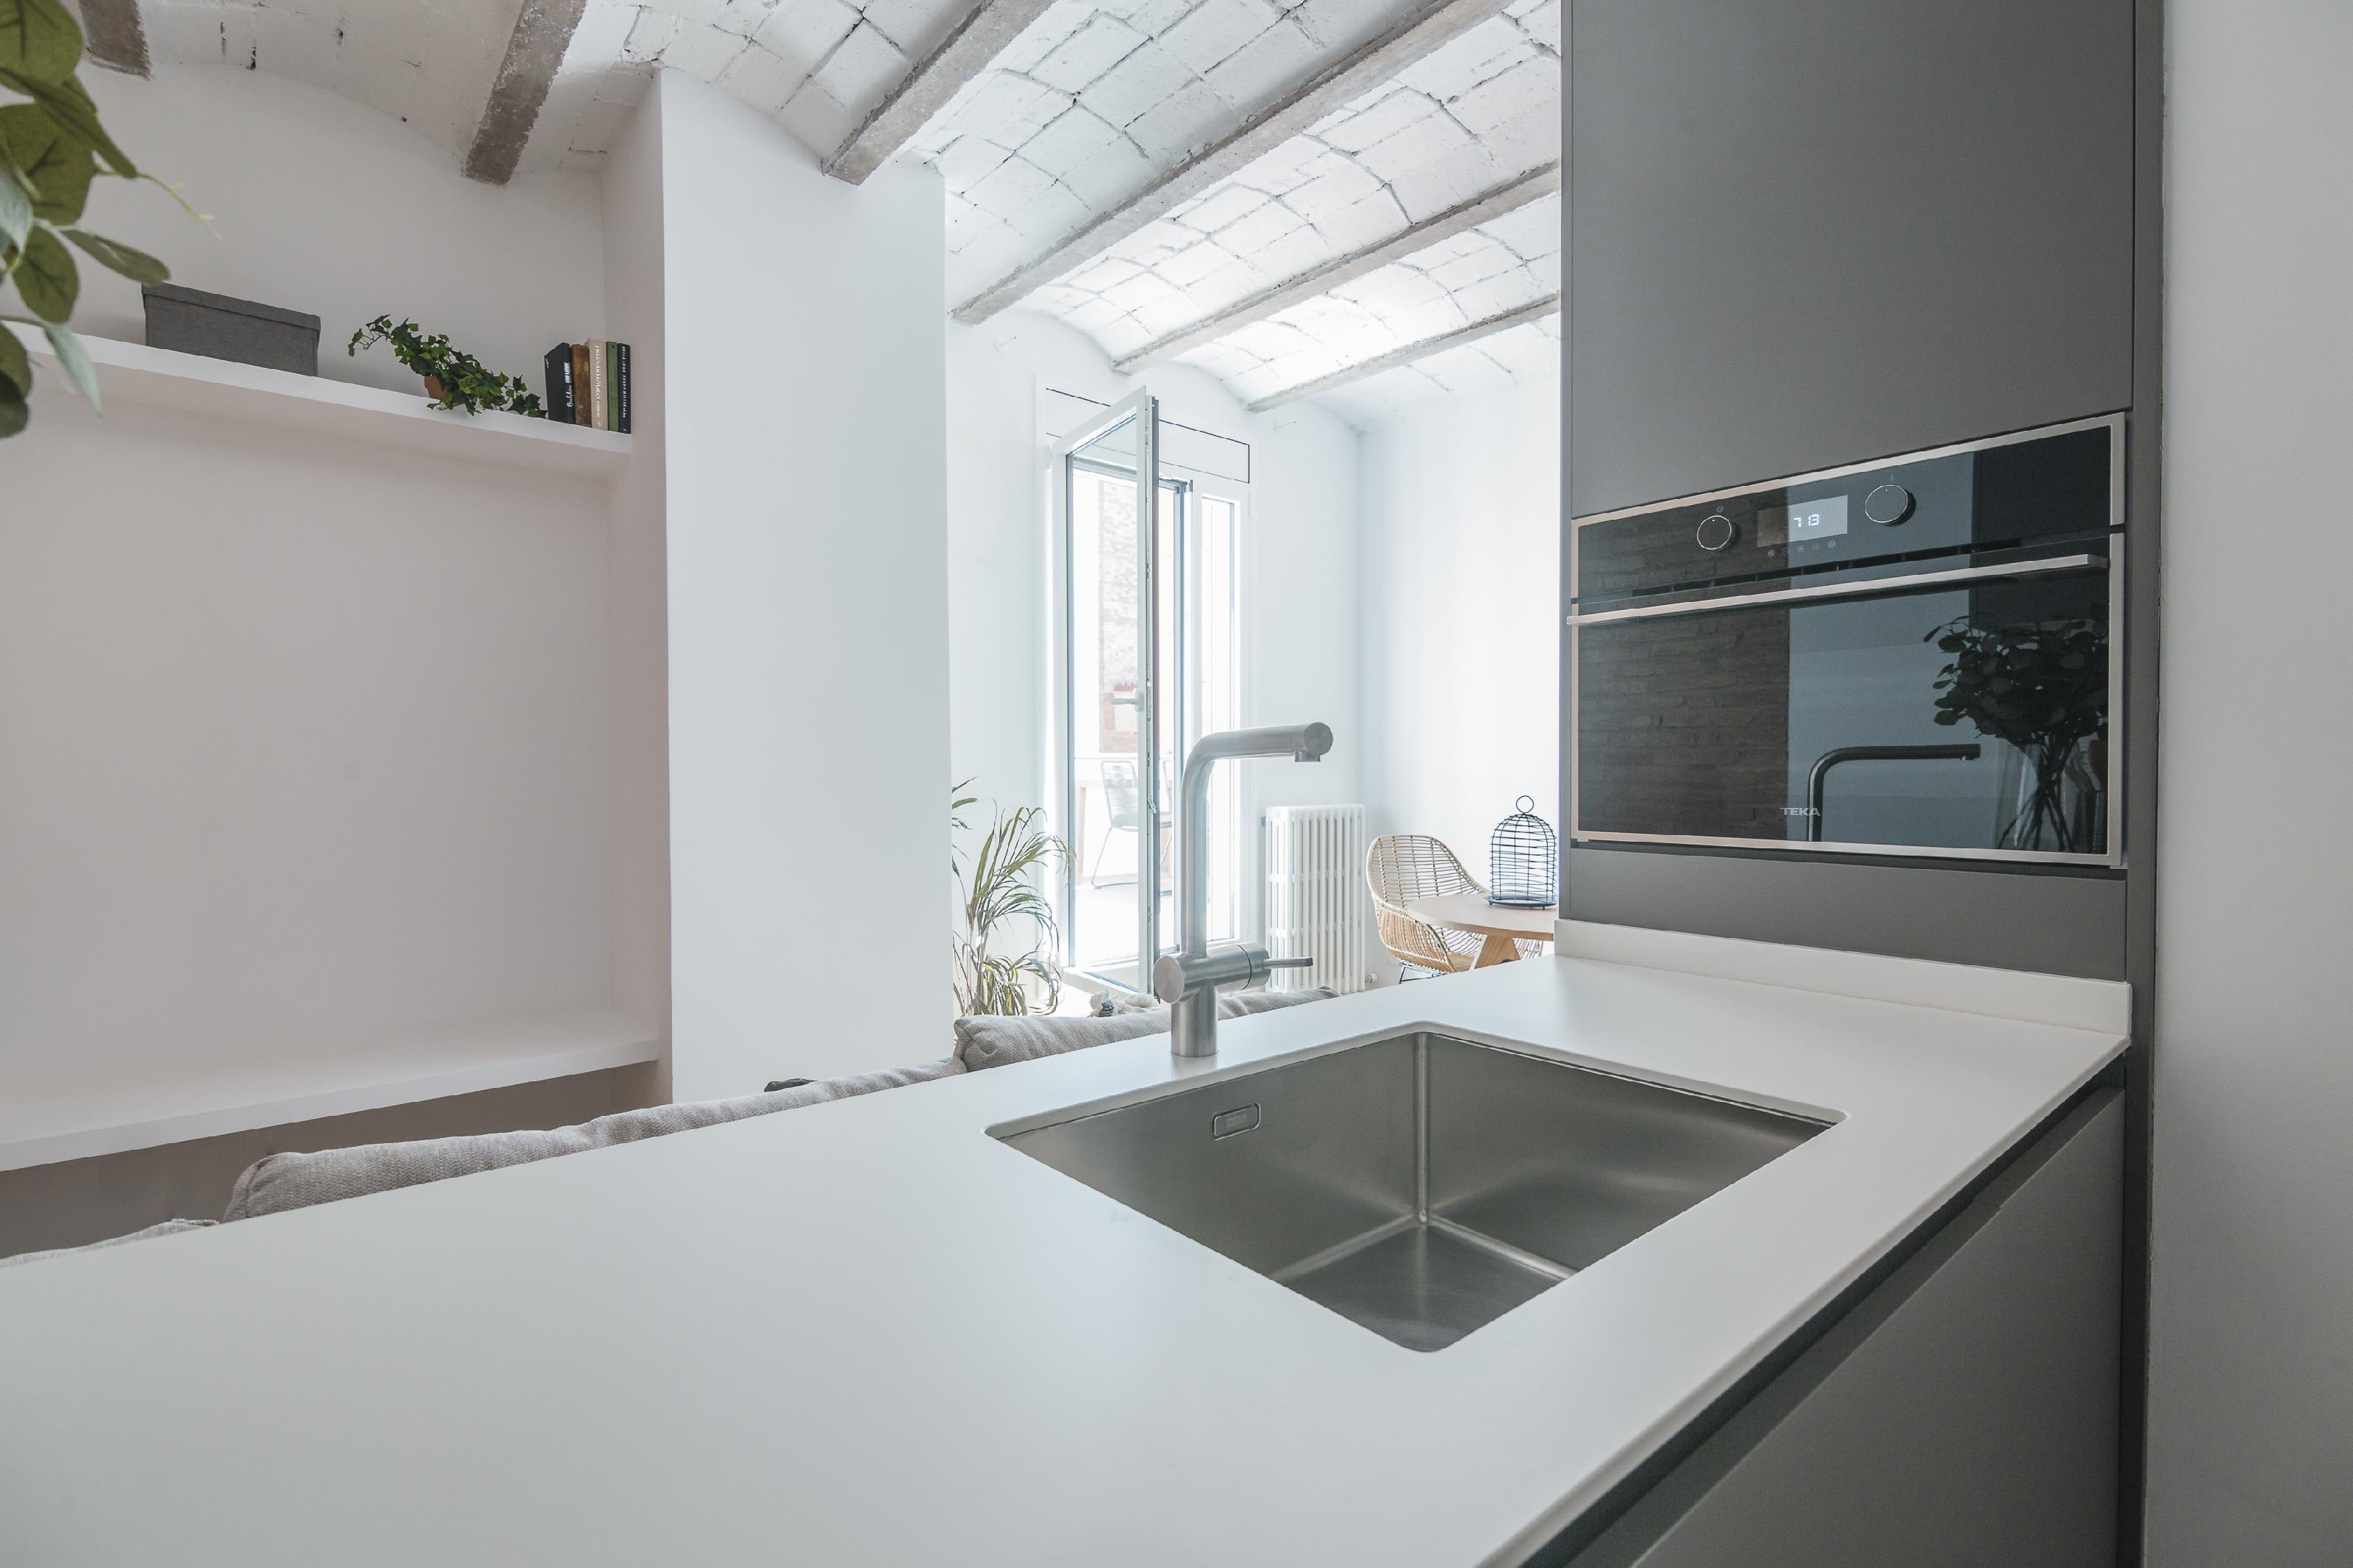 240301 Flat for sale in Gràcia, Camp Grassot and Gràcia Nova 13